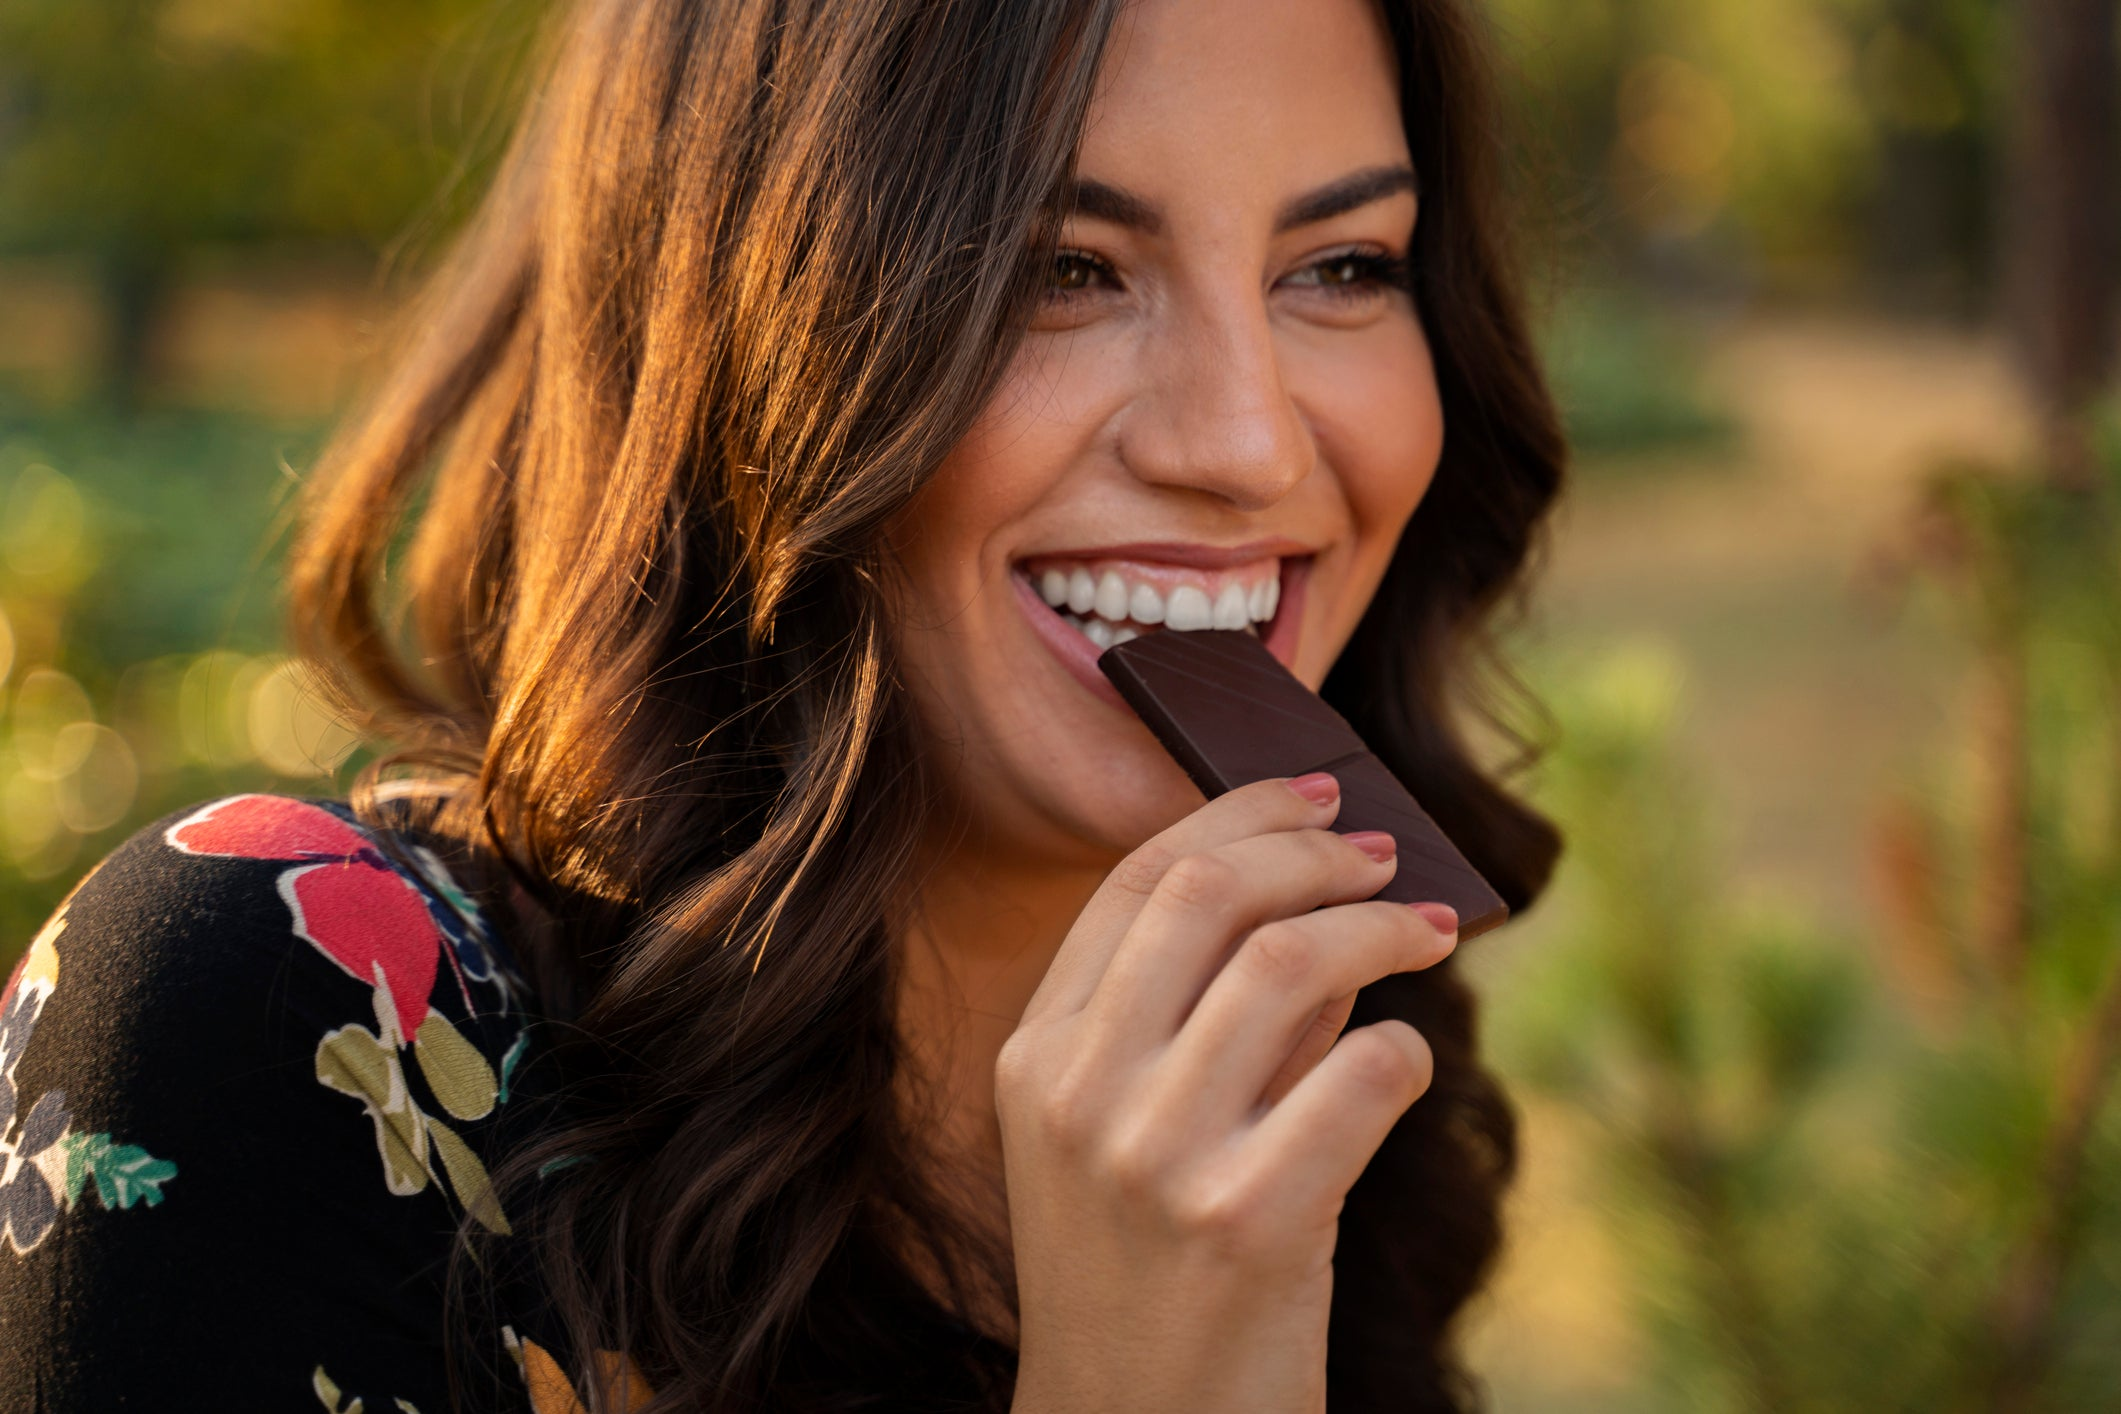 Hershey Earnings: What to Watch Demitri Kalogeropoulos | Jul 26, 2021